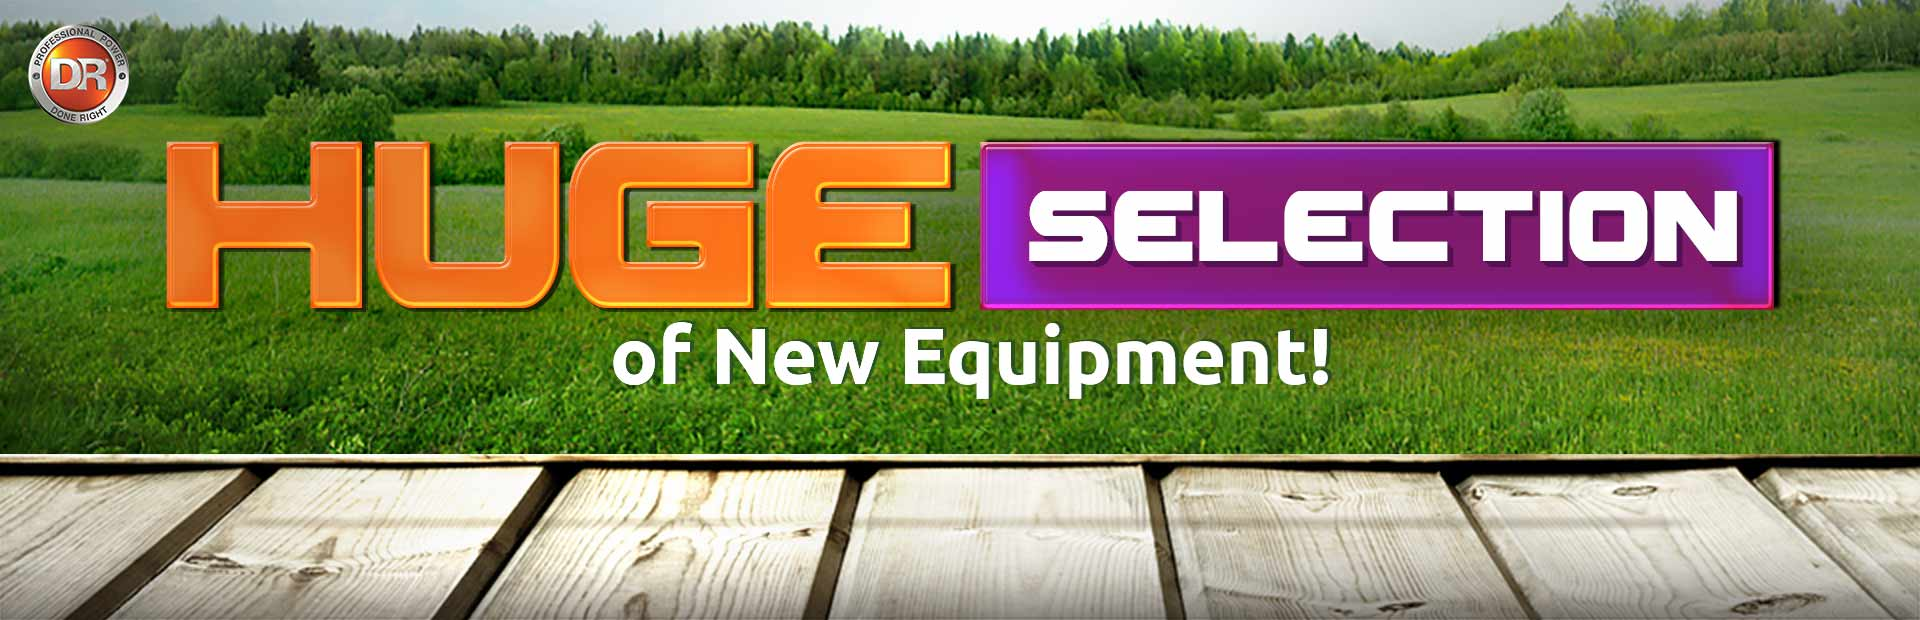 DR Power Equipment: Click here to view our huge selection of new equipment!